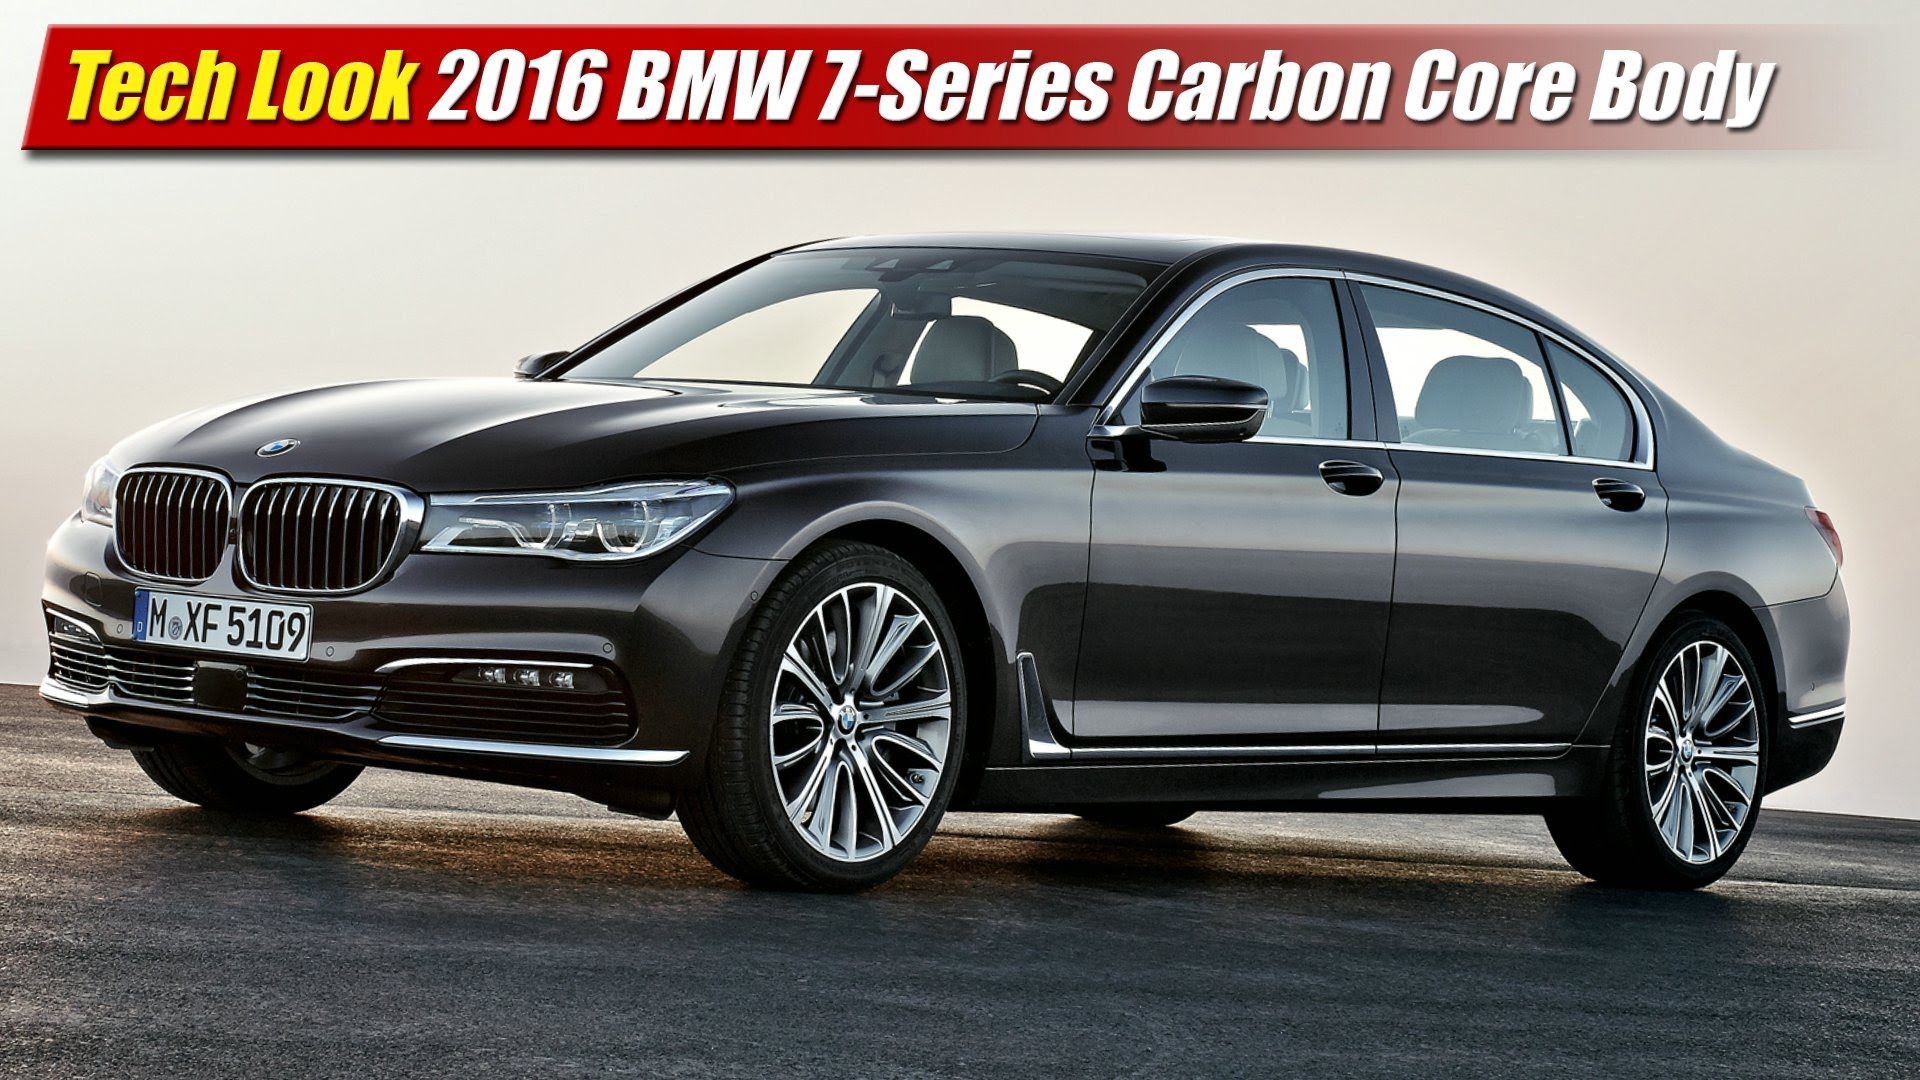 tech look 2016 bmw 7 series carbon core body testdriven tv. Black Bedroom Furniture Sets. Home Design Ideas